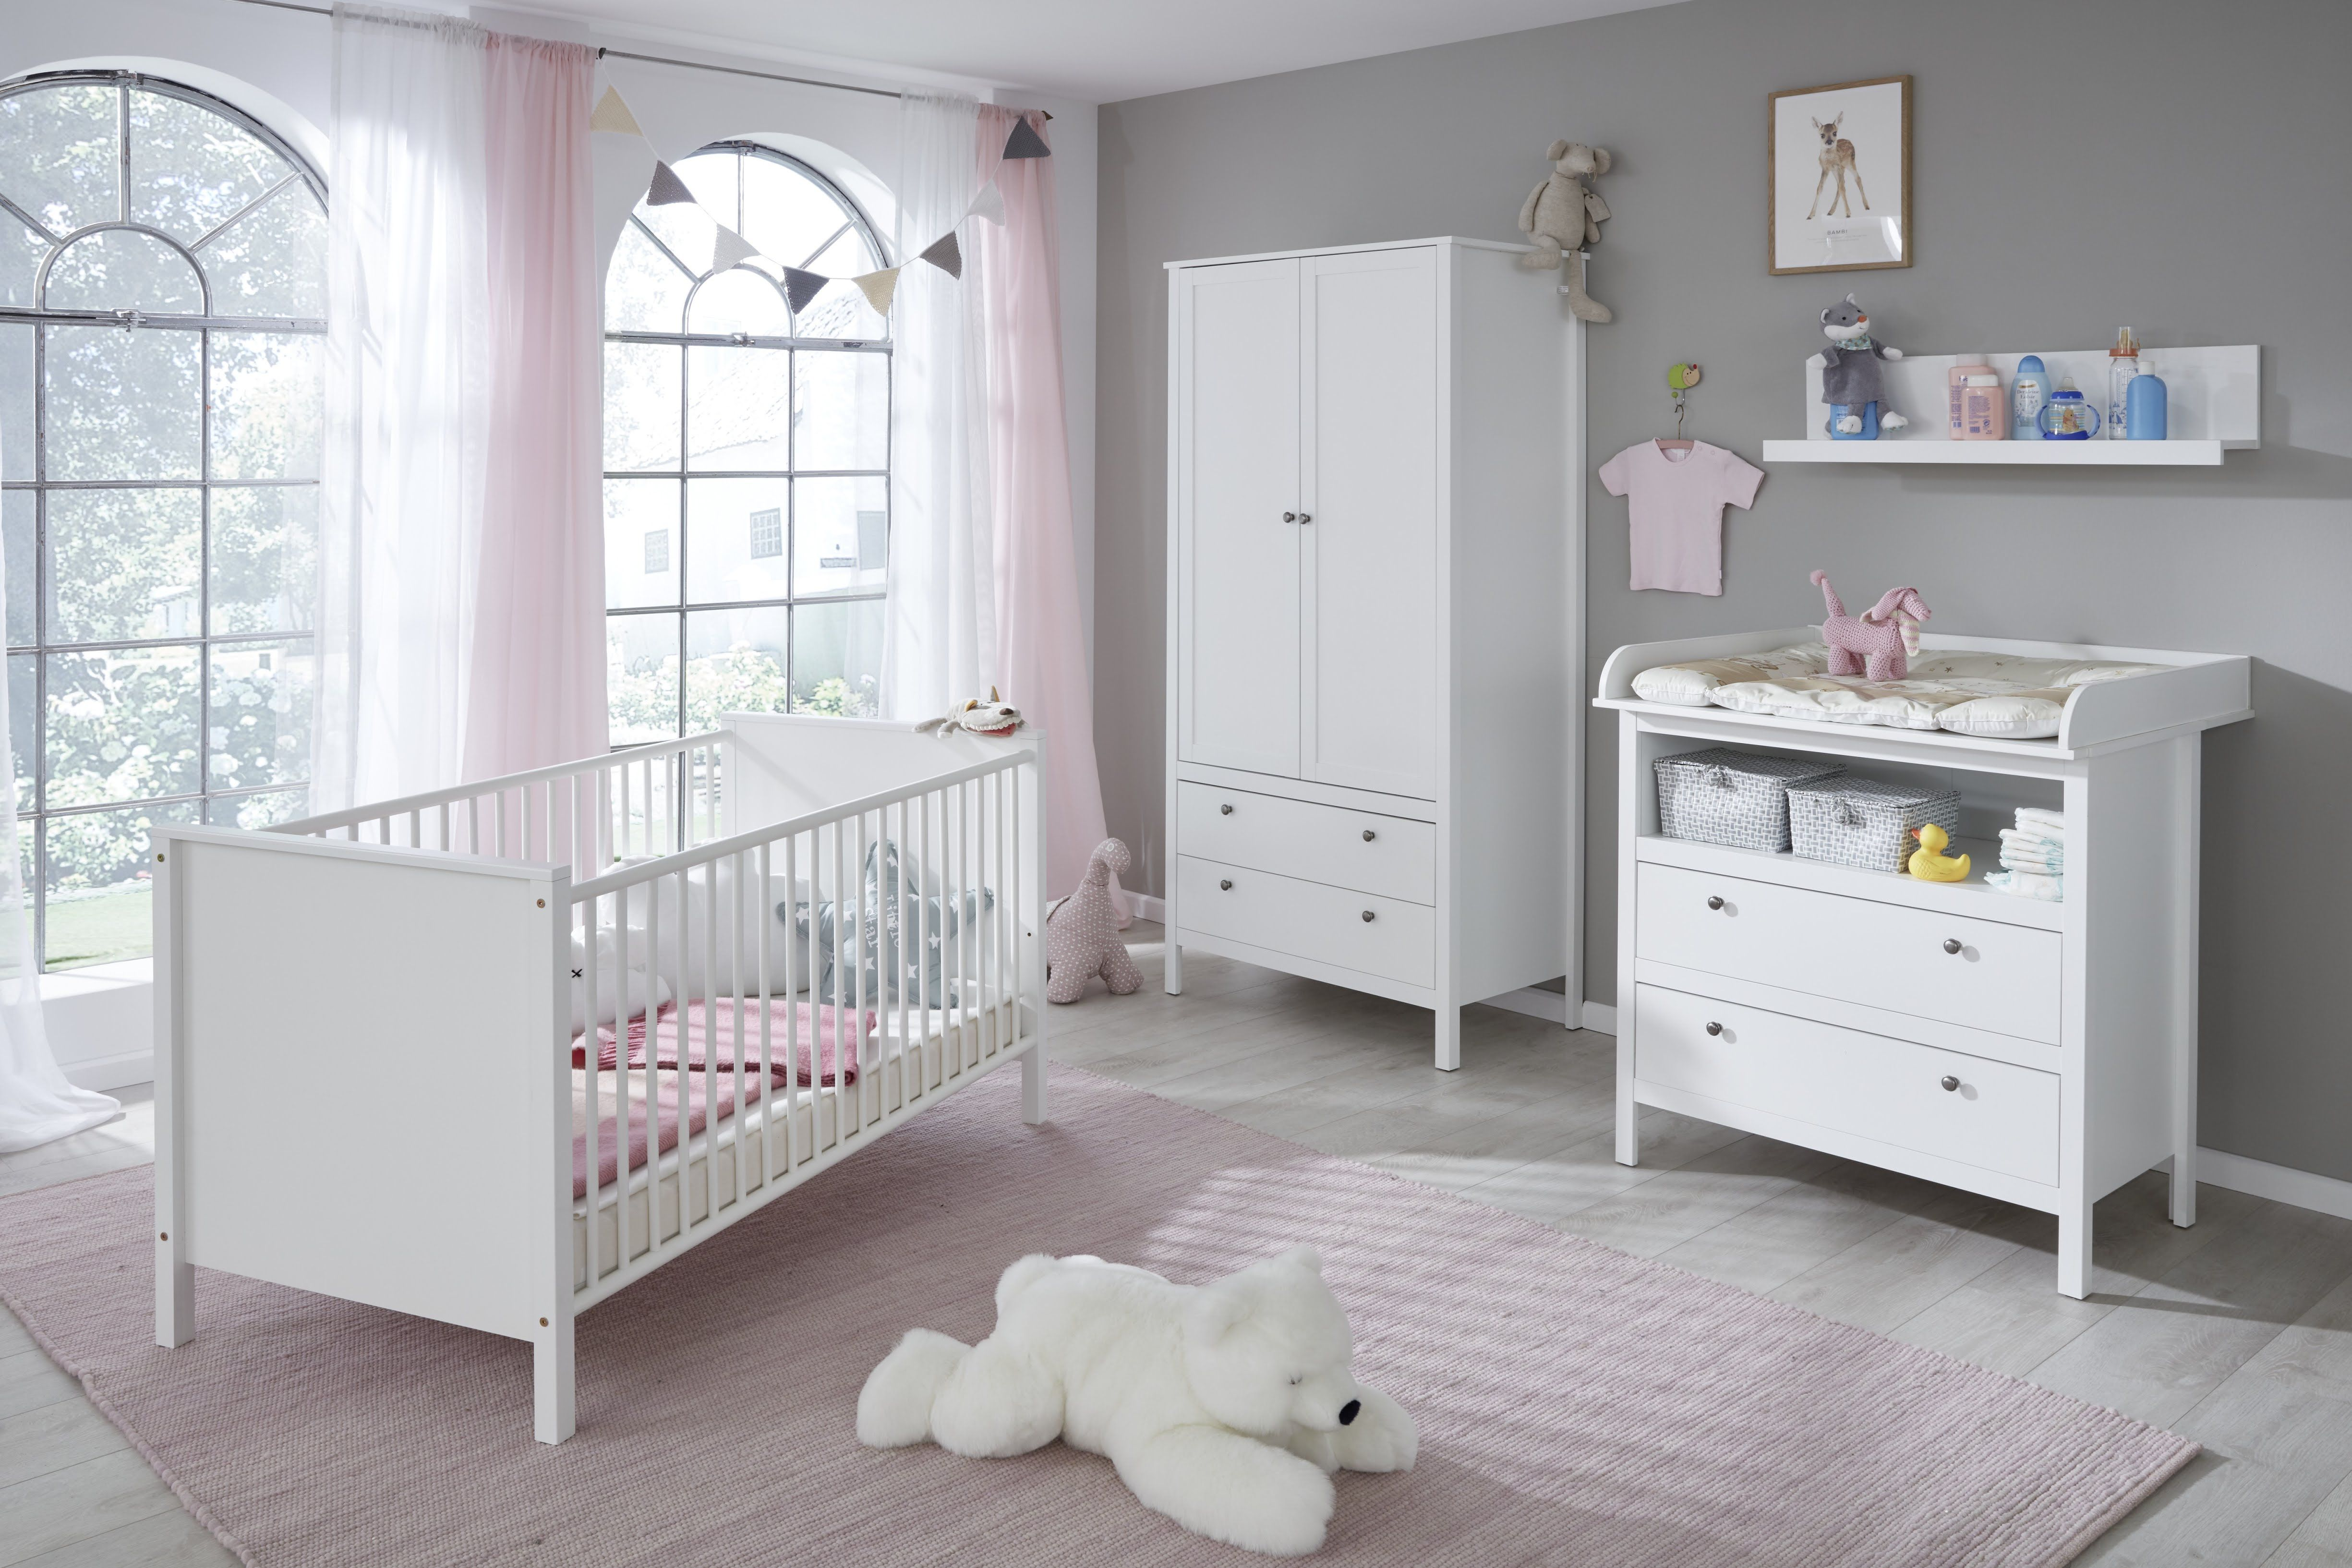 baby bedroom furniture sets cheap in 2020 baby bedroom on Cheap Childrens Bedroom Furniture Sets id=67619